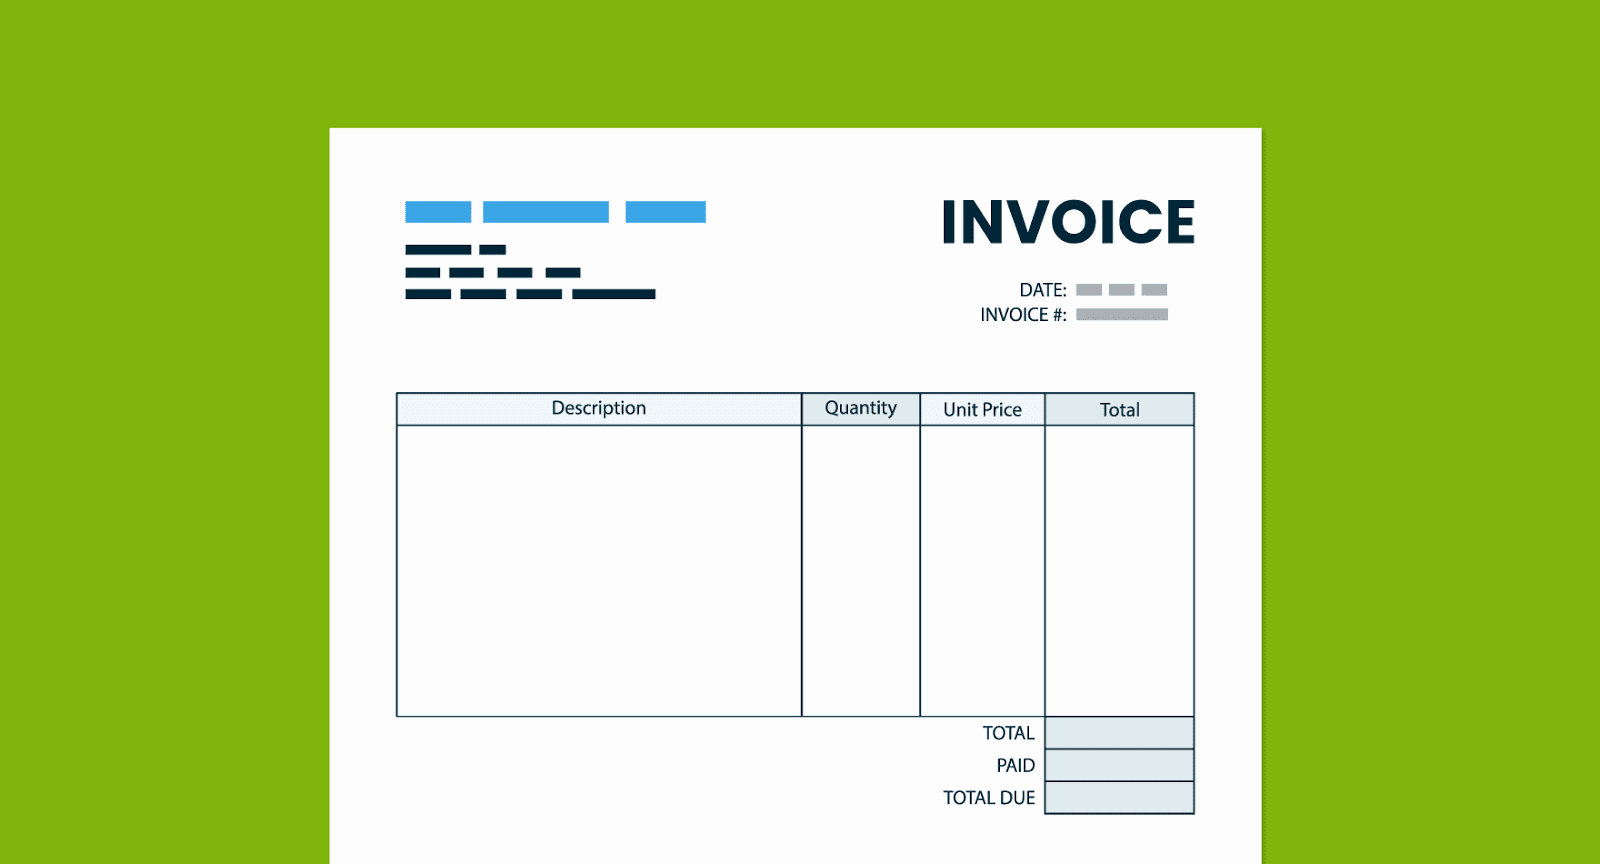 Invoice Spreadsheet Template Free Best Of Free Blank Invoice Template for Excel Excel Template